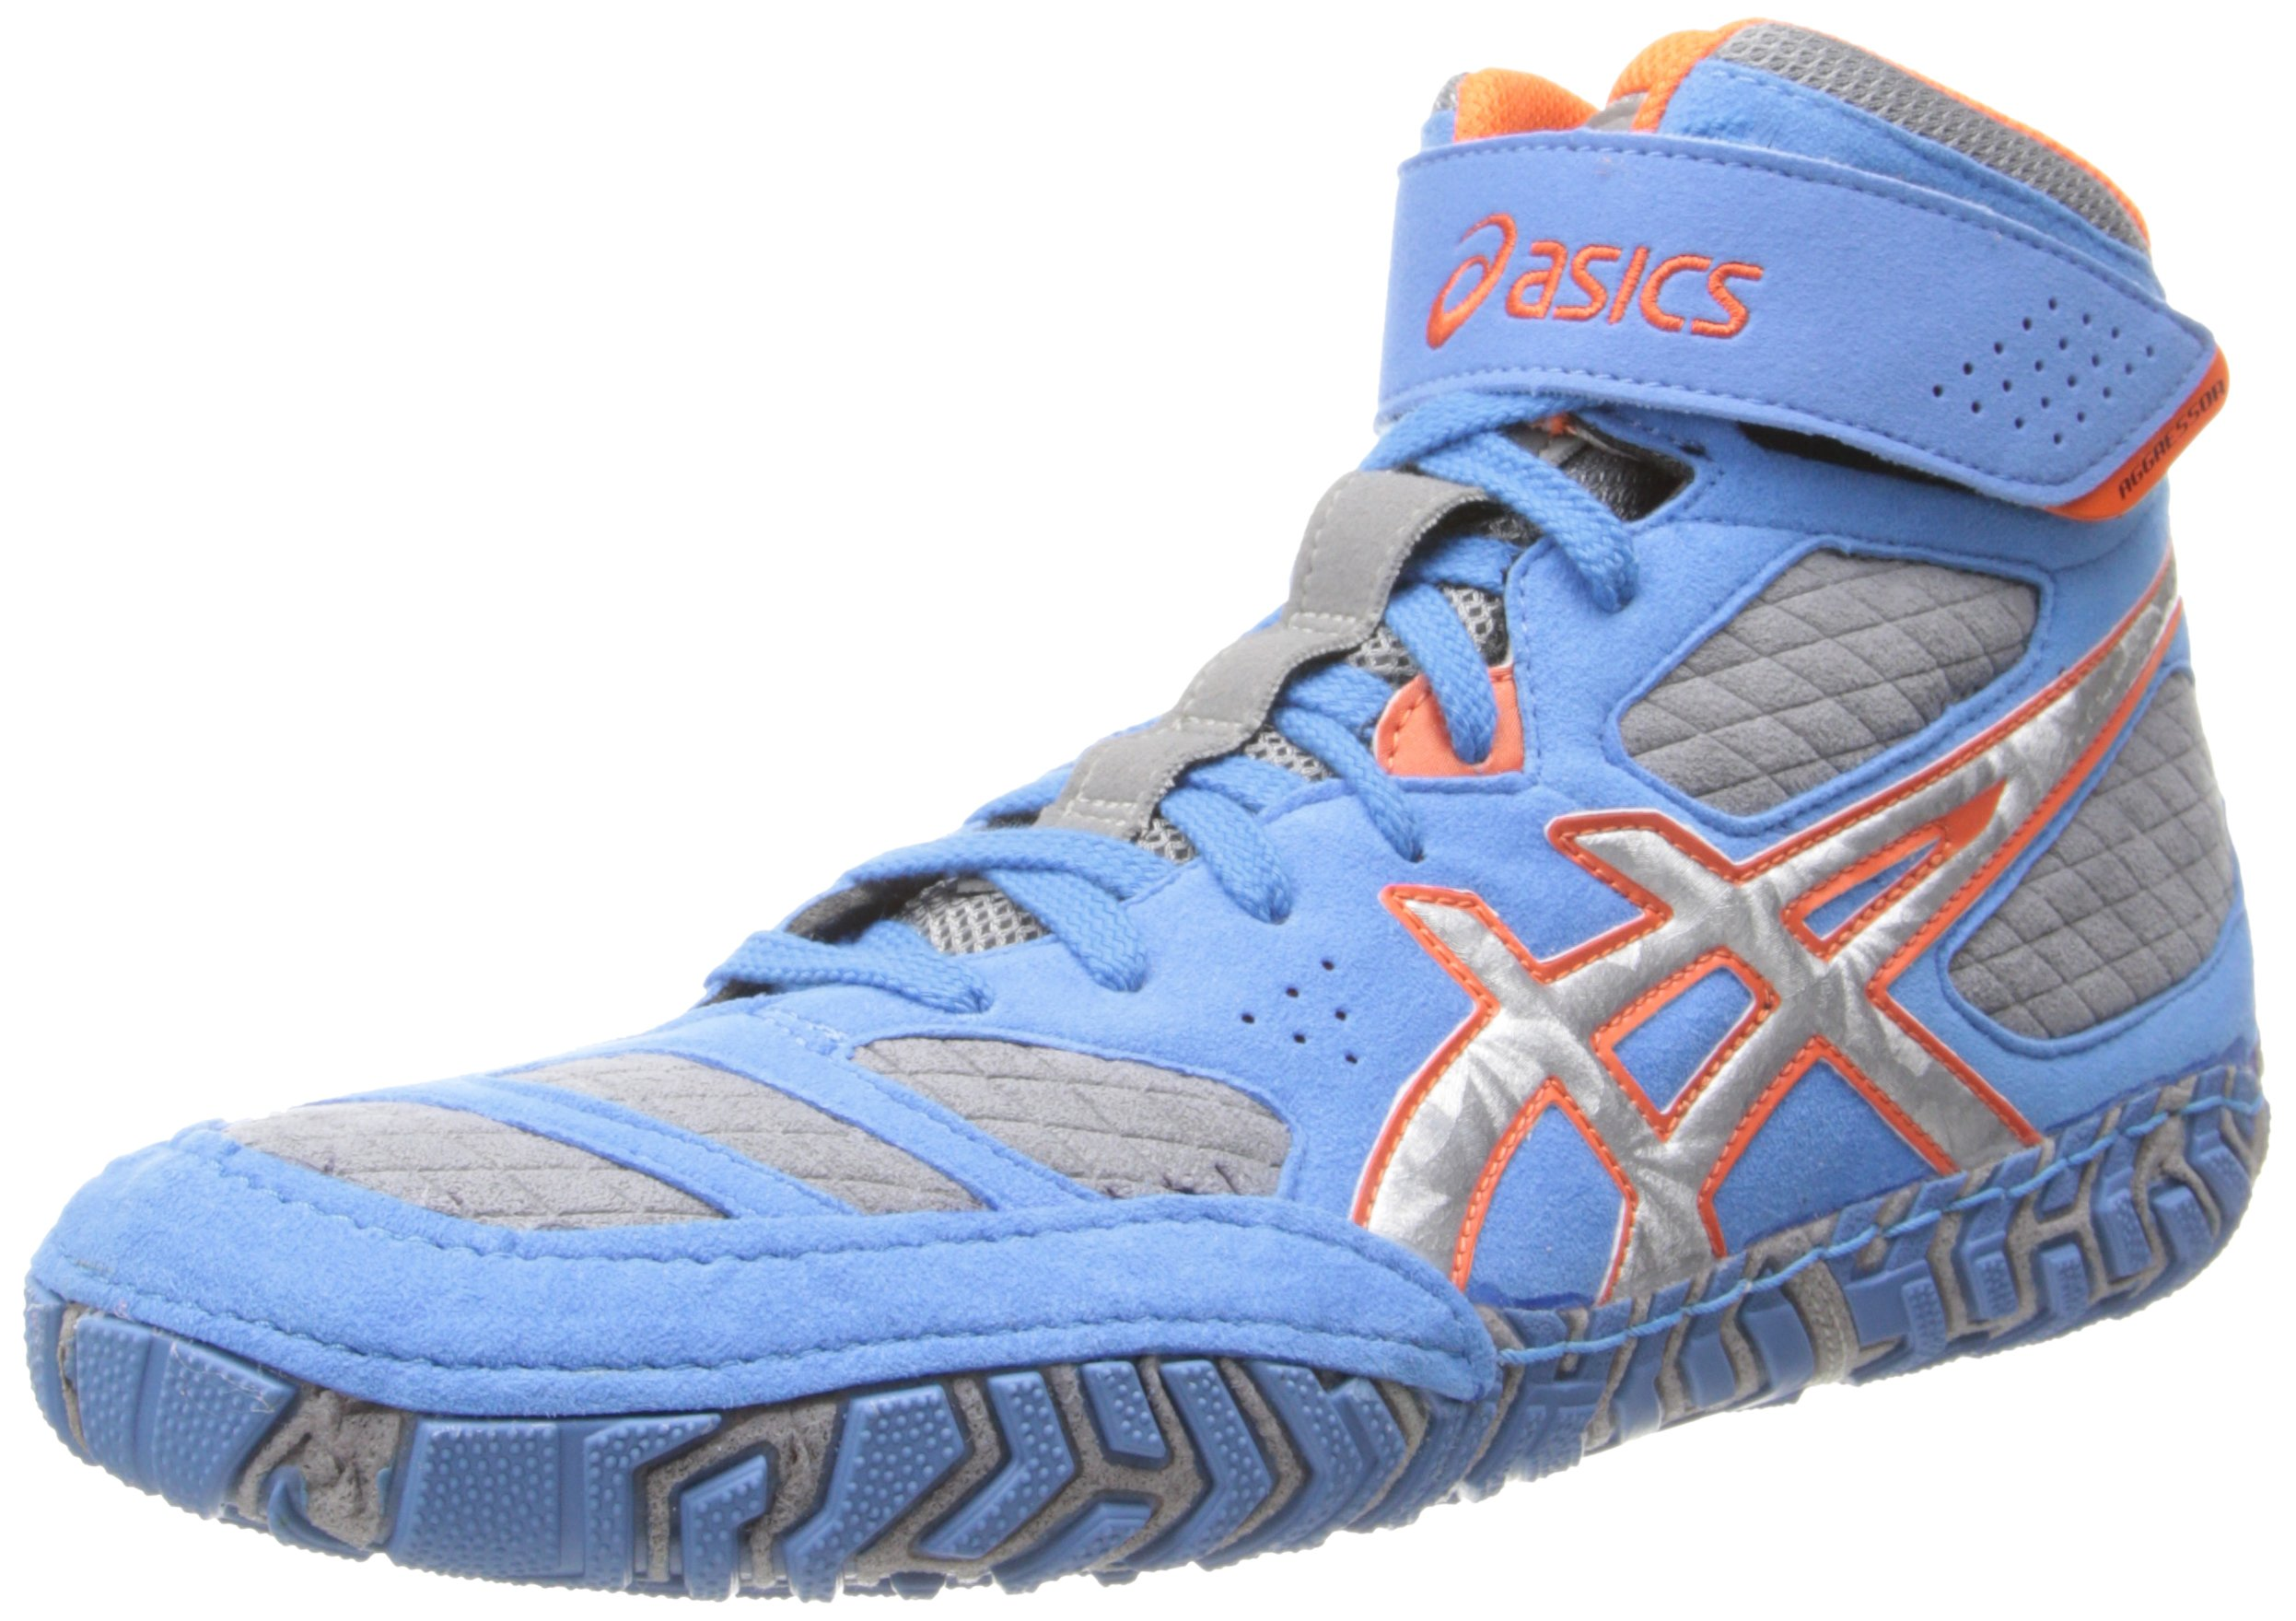 ASICS Men's Aggressor 2 Wrestling Shoe,Dusty Blue/Silver/Red Orange,11.5 M US by ASICS